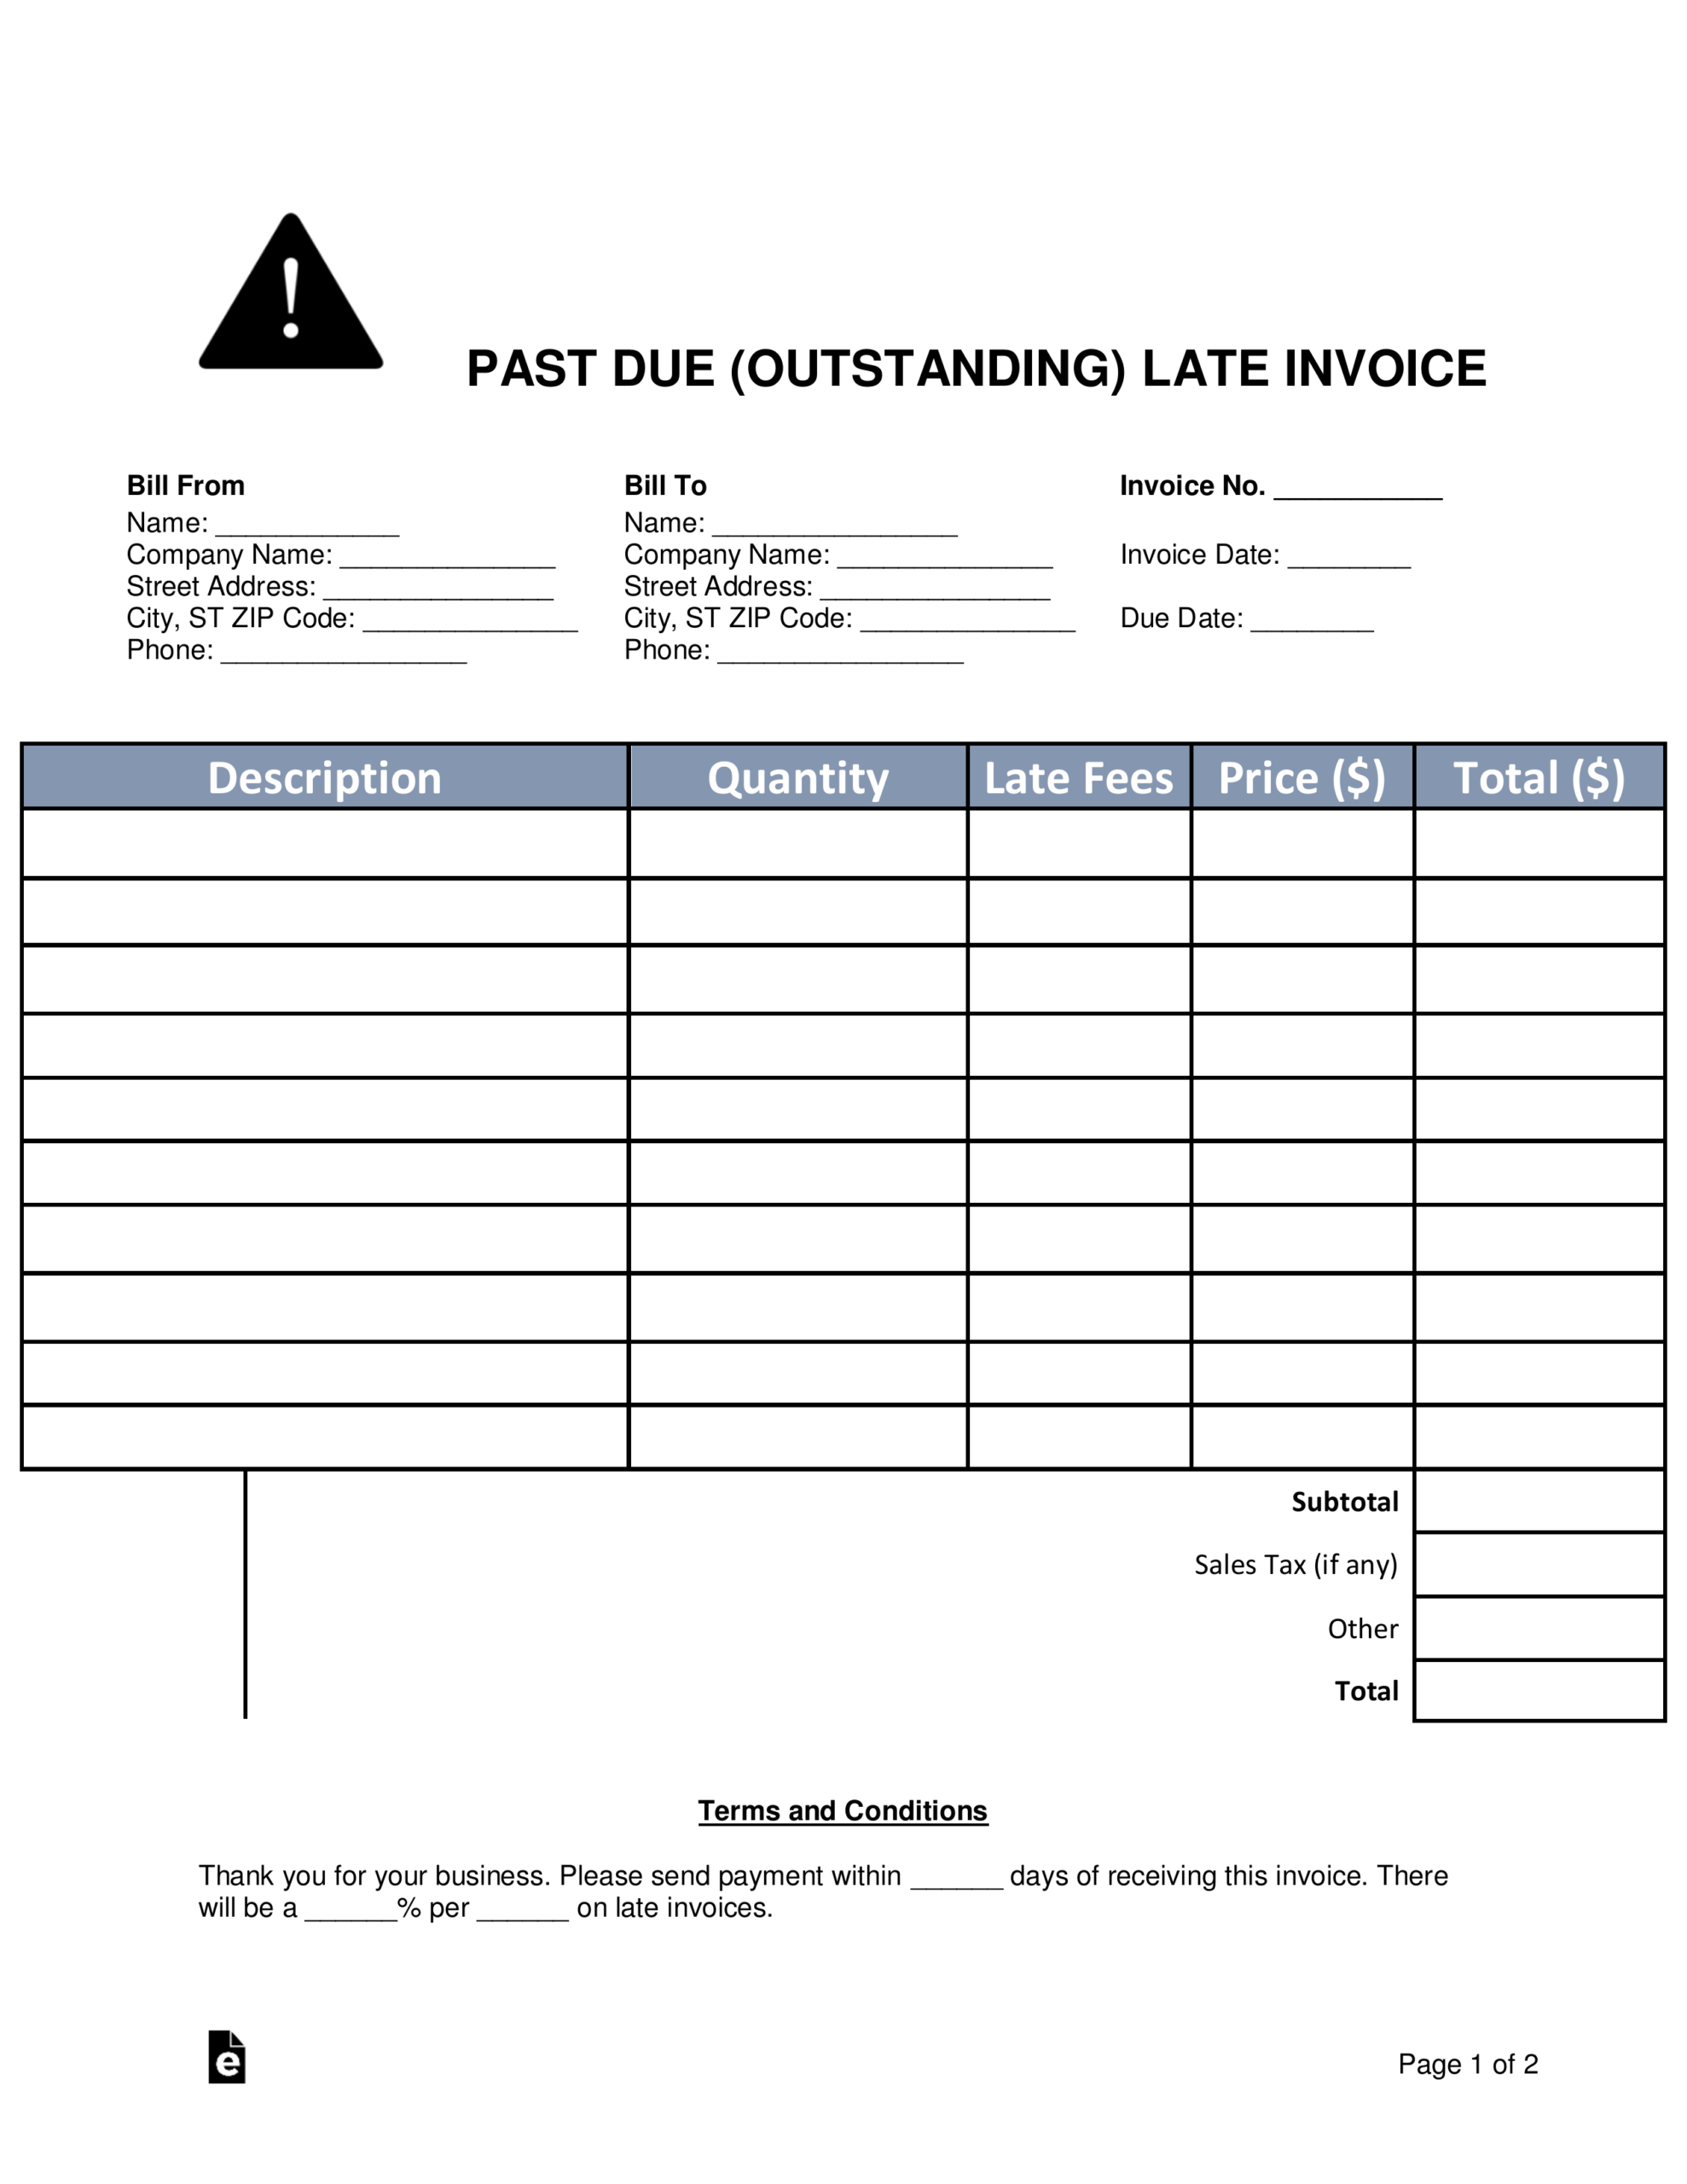 Free Past Due (Outstanding) Late Invoice - Word | Pdf – Eforms